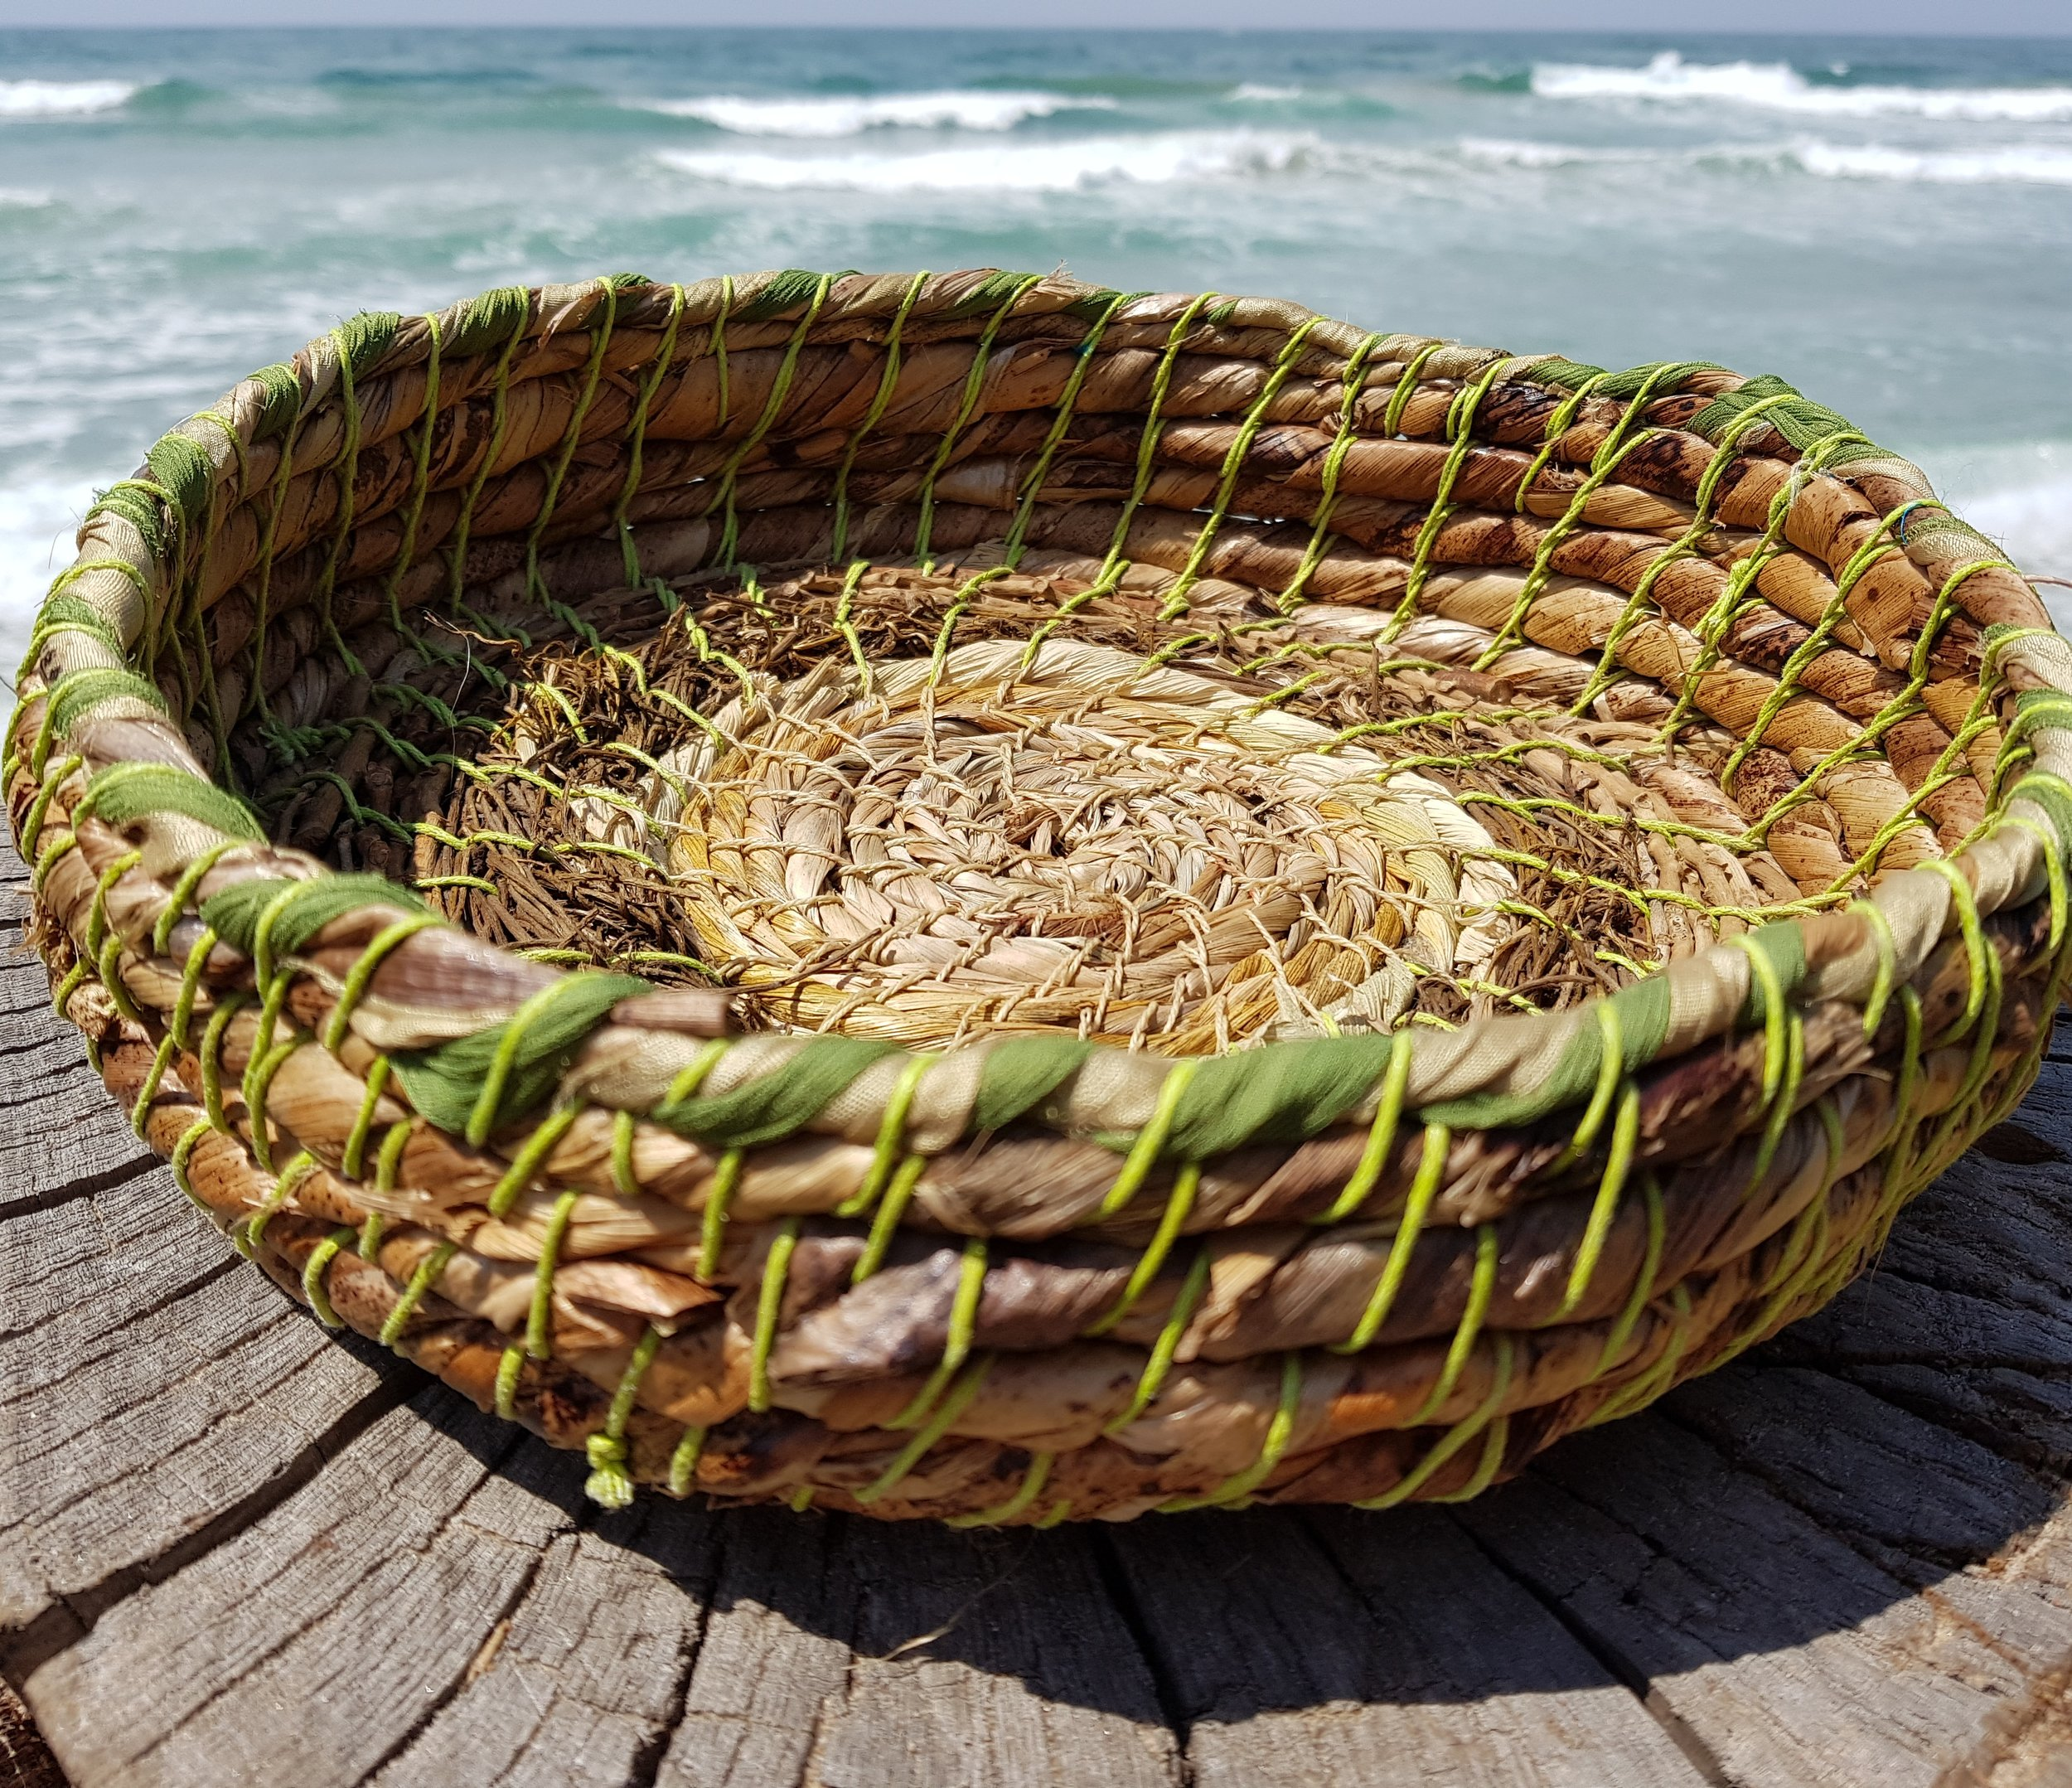 Stitched Basket - Make a Basket- Last minute gift making! Create a little handmade stitched basket using plant fibres, recycled materials, fabrics etc It may be too beautiful to part with!Fri. 21st Dec or Sat. 22nd Dec 2pm-5pm $80. All materials included. No experience necessary.